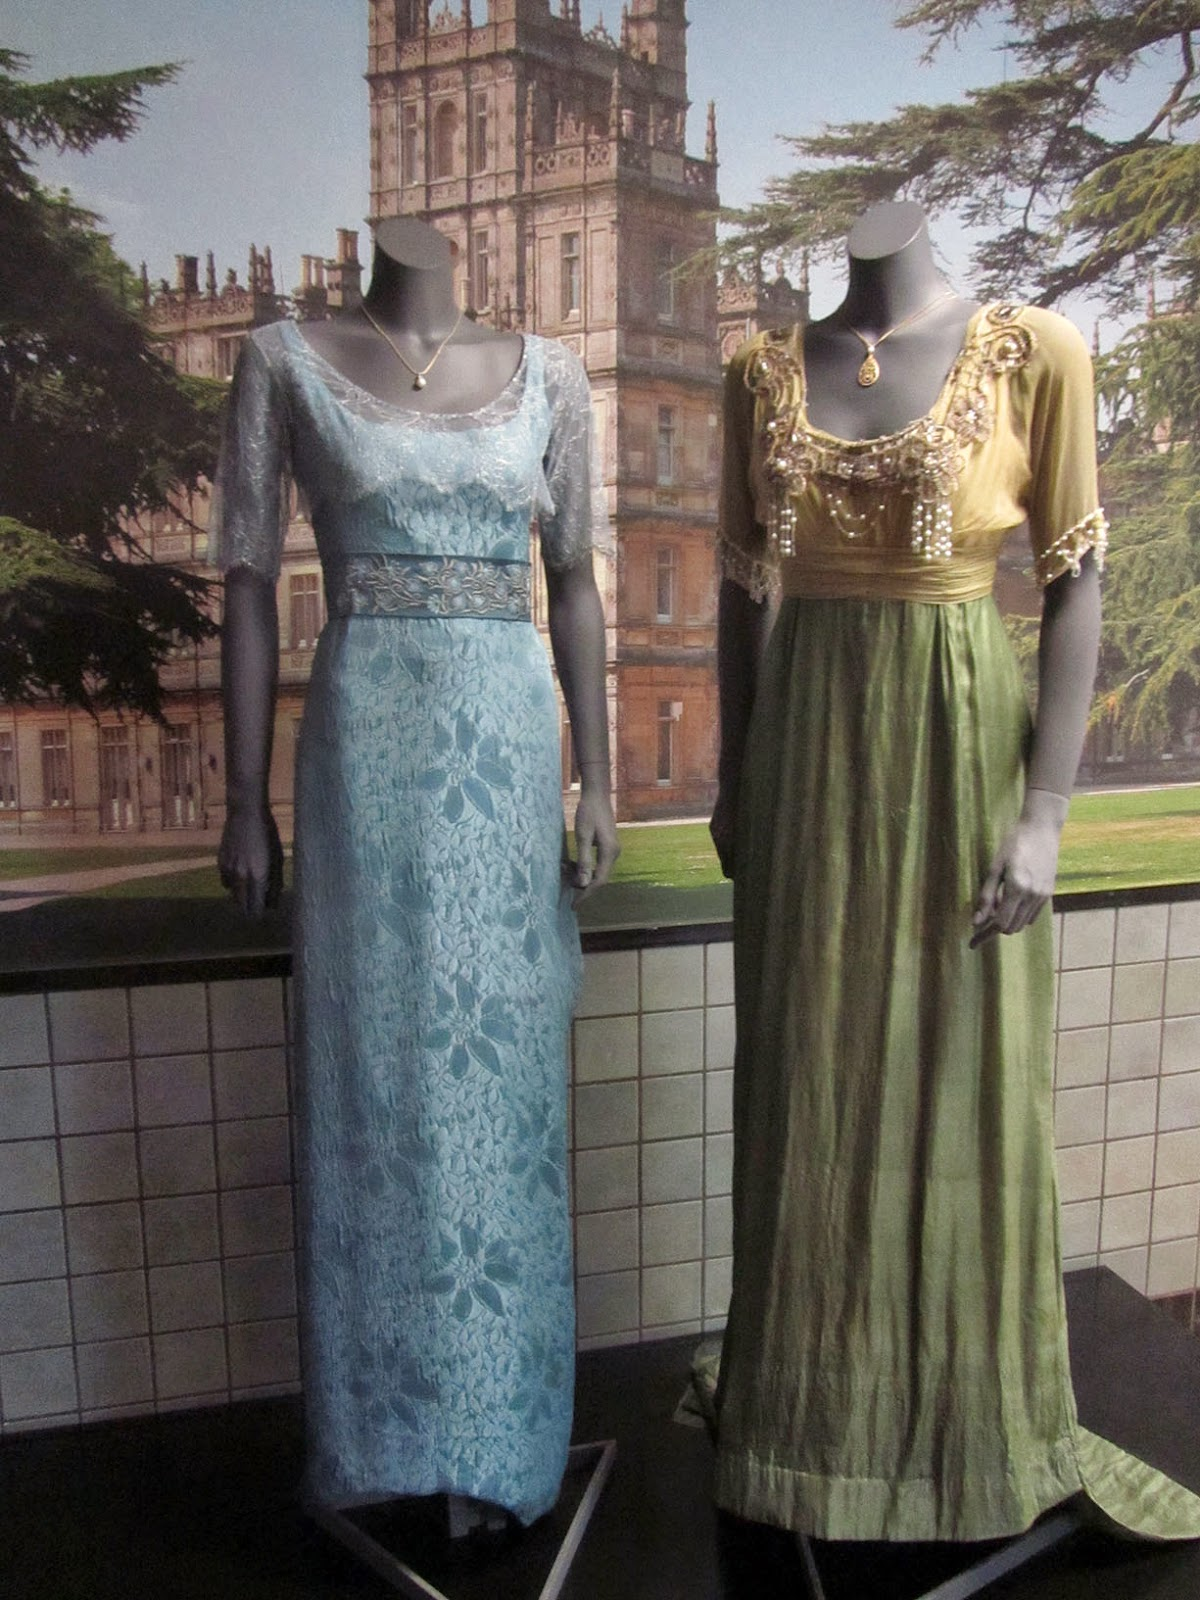 two dresses from TV series Downton Abbey